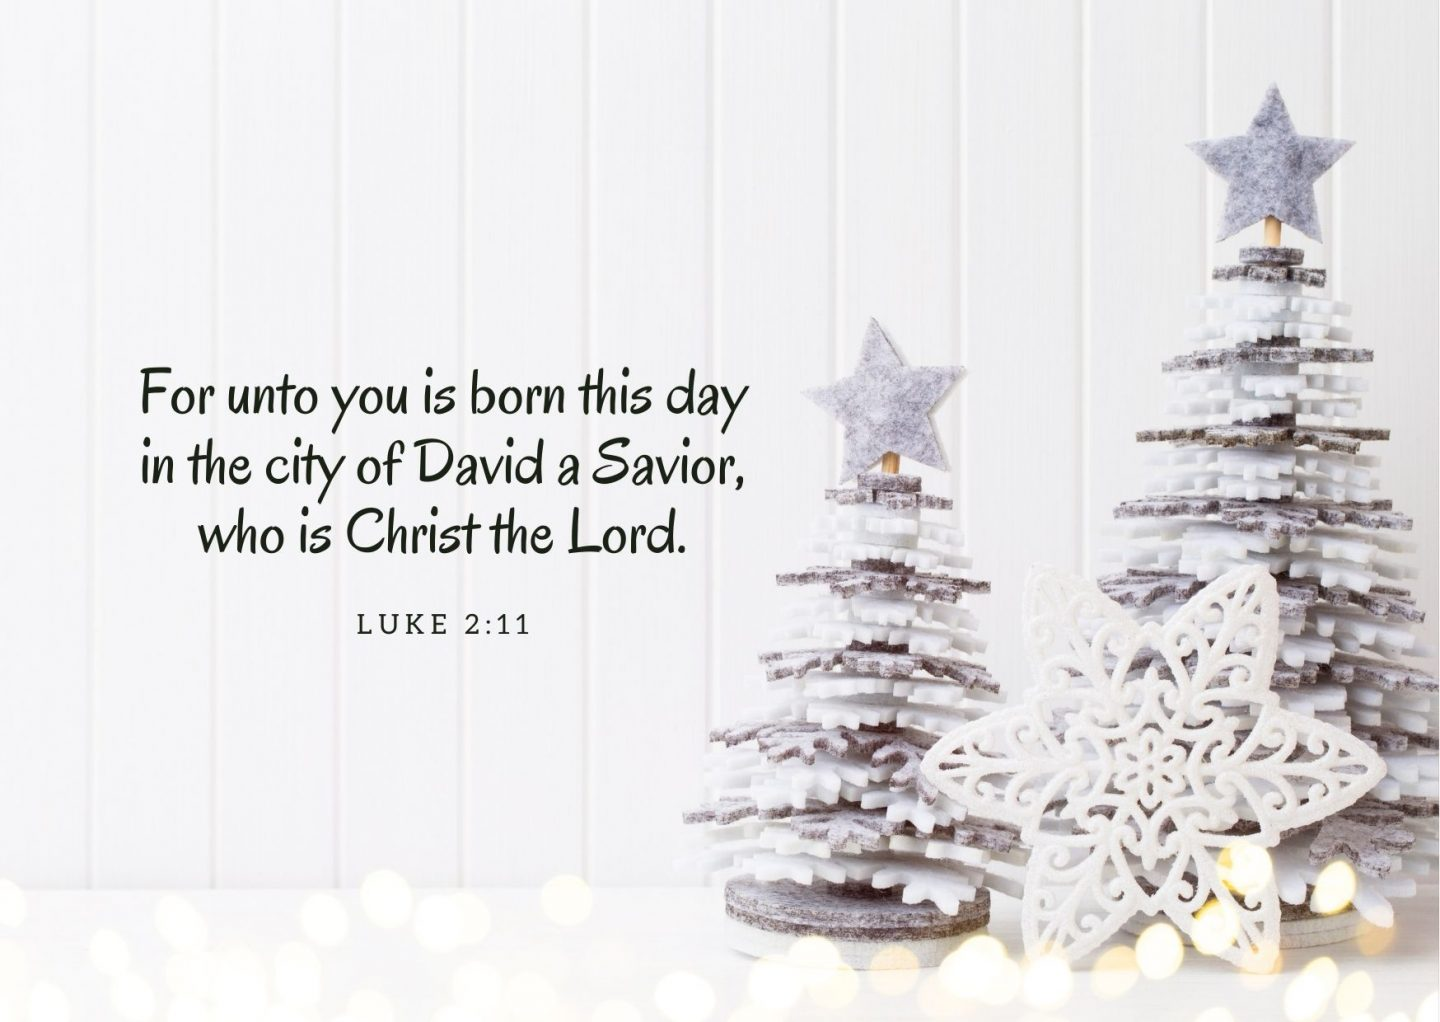 For unto you is born this day in the city of David a Savior, who is Christ the Lord. Luke 2:11